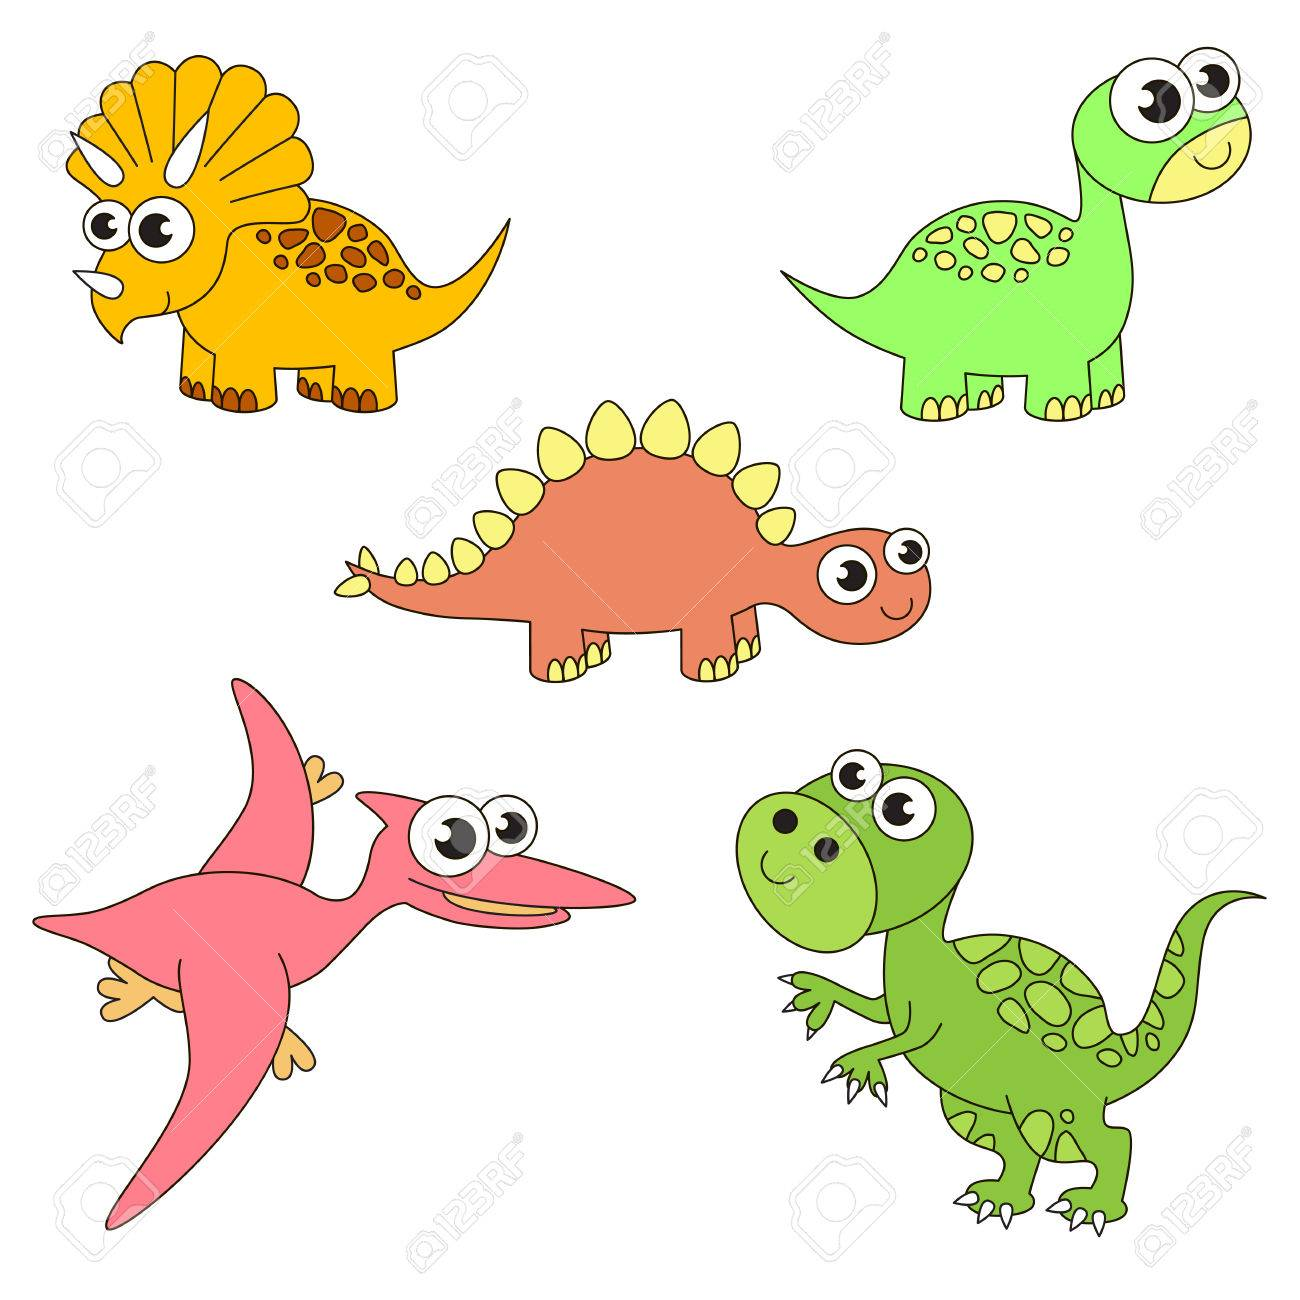 Tremendous Dinosaurus Dino Elements Set Collection Of Coloring Book Template The Group Outline